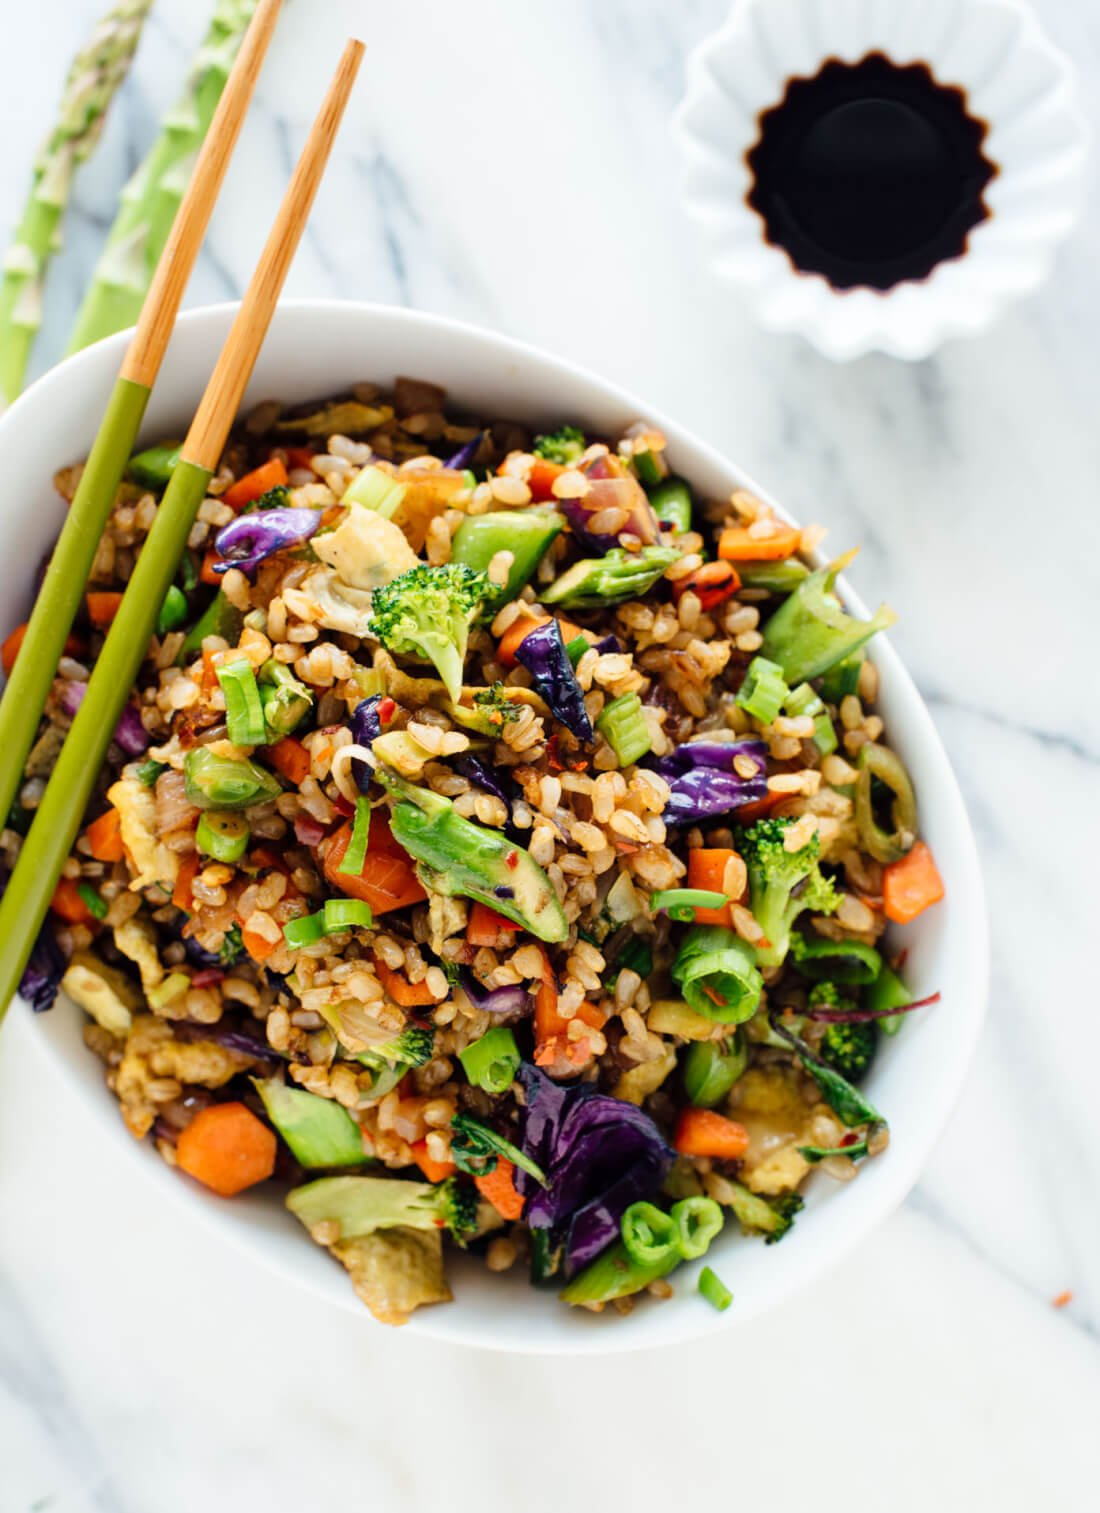 Vegetable fried rice recipe made with extra veggies and brown rice ...